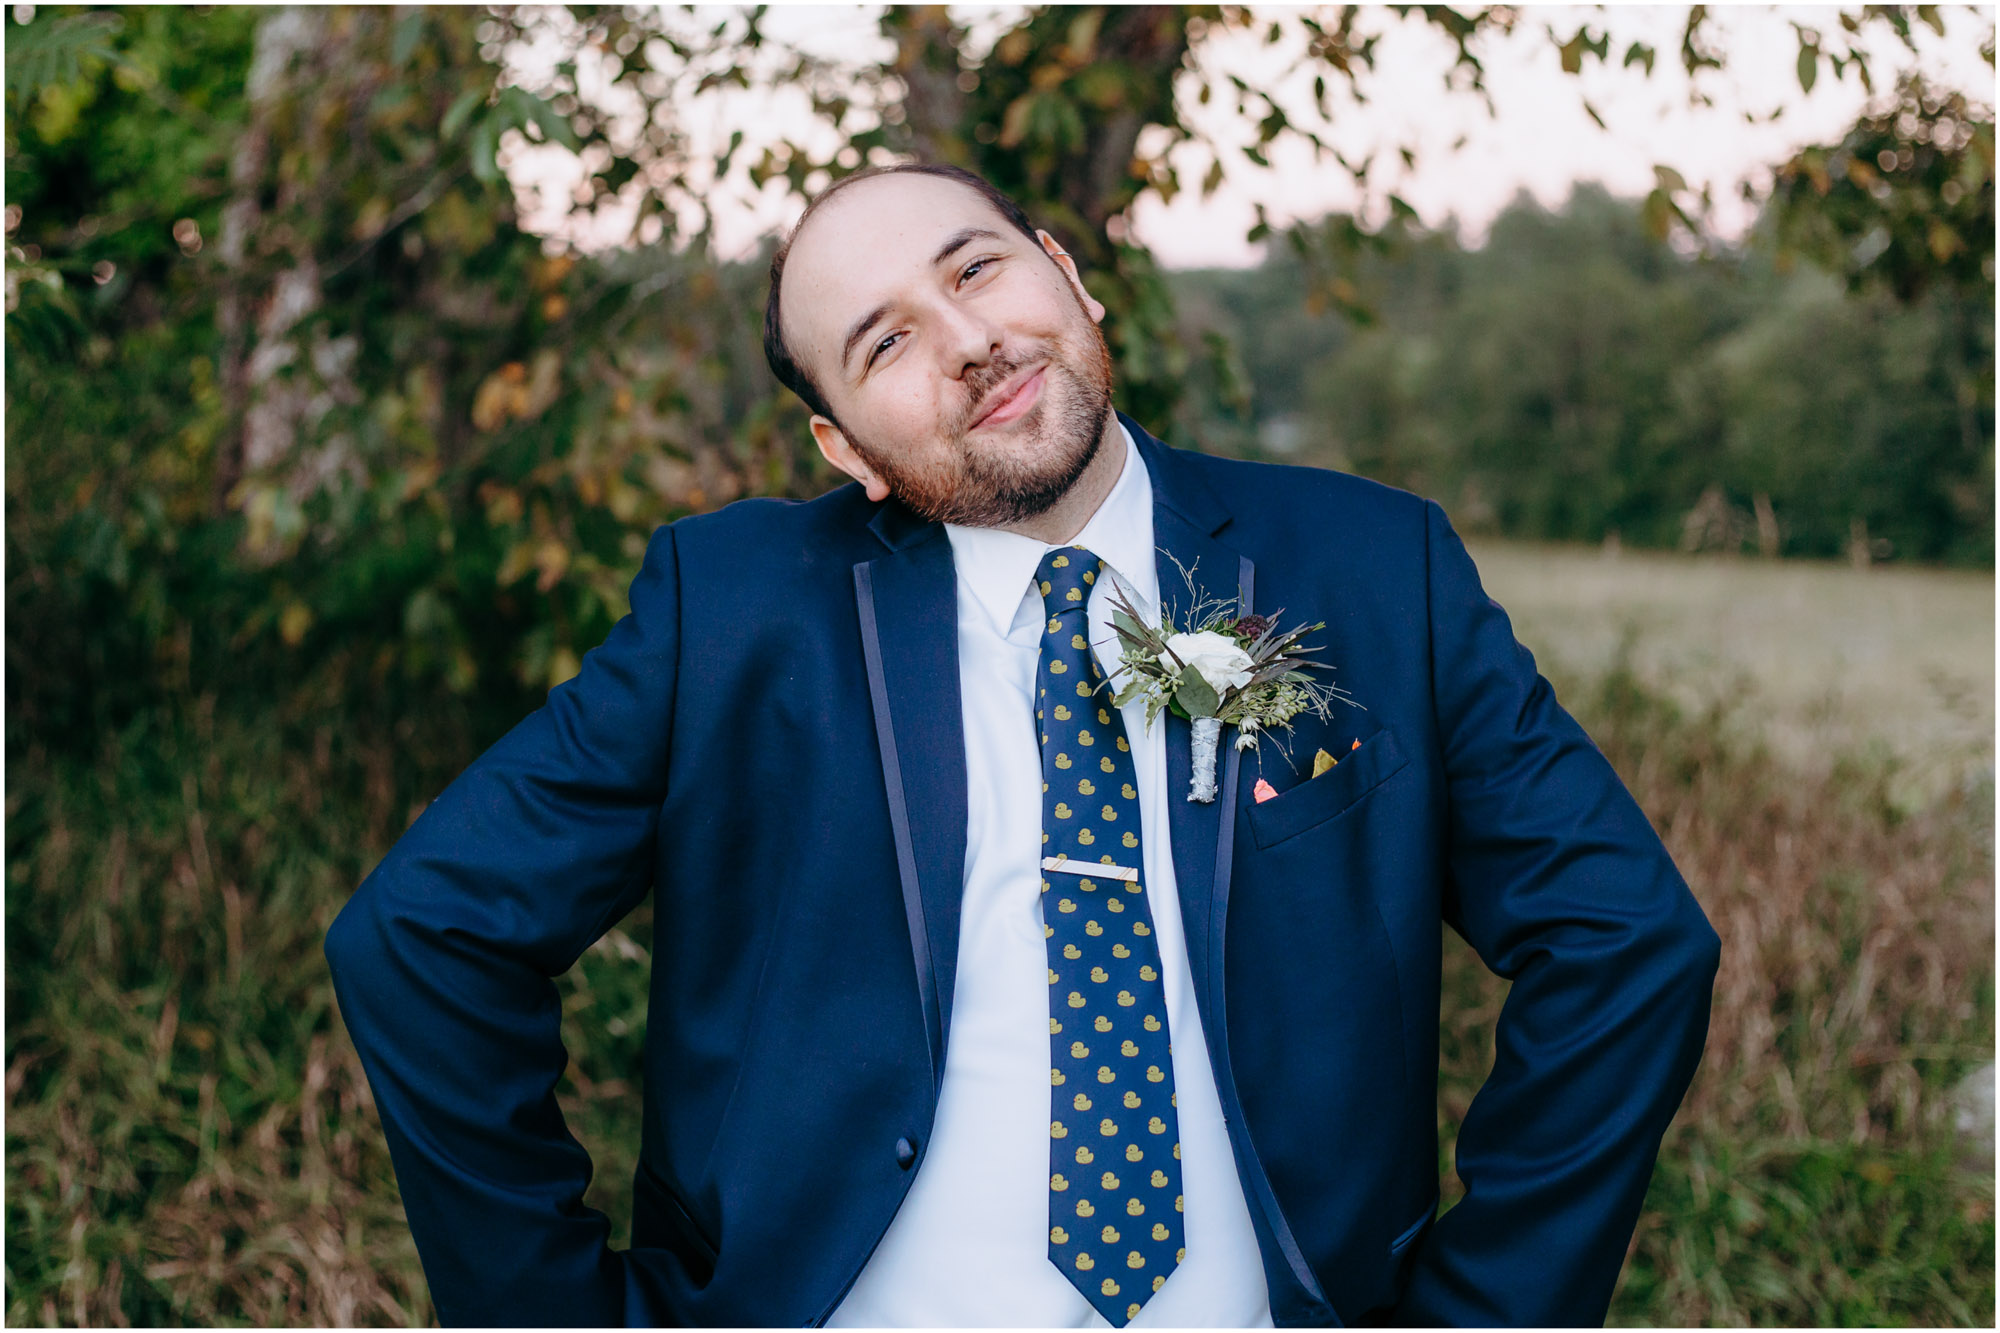 Adorable, smiling groom - by Ashleigh Laureen Photography at LaBelle Winery in Amherst, New Hampshire